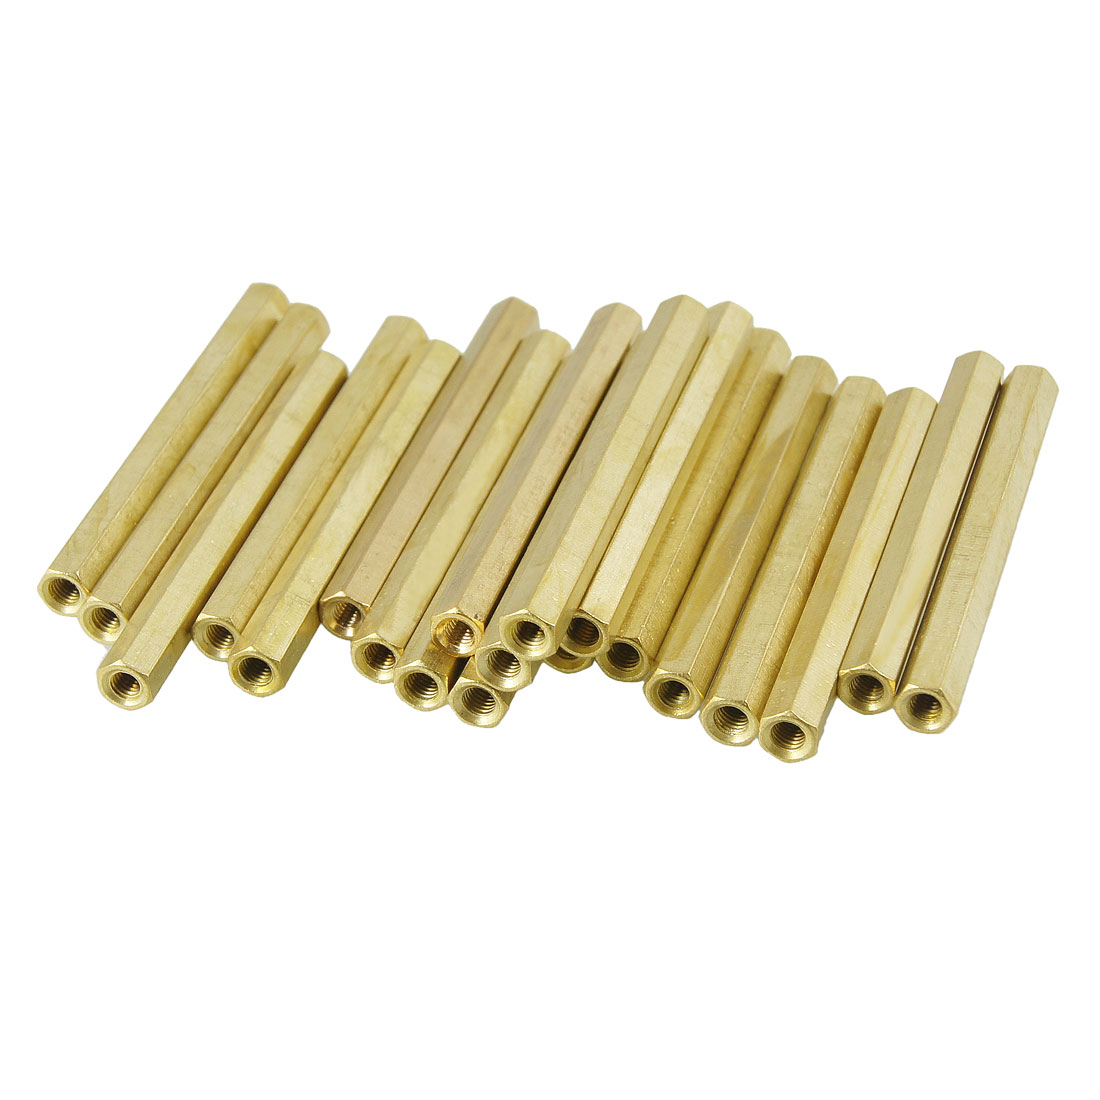 20 Pcs 3mm Female Thread Hexagonal Standoff Spacers 50mm Body